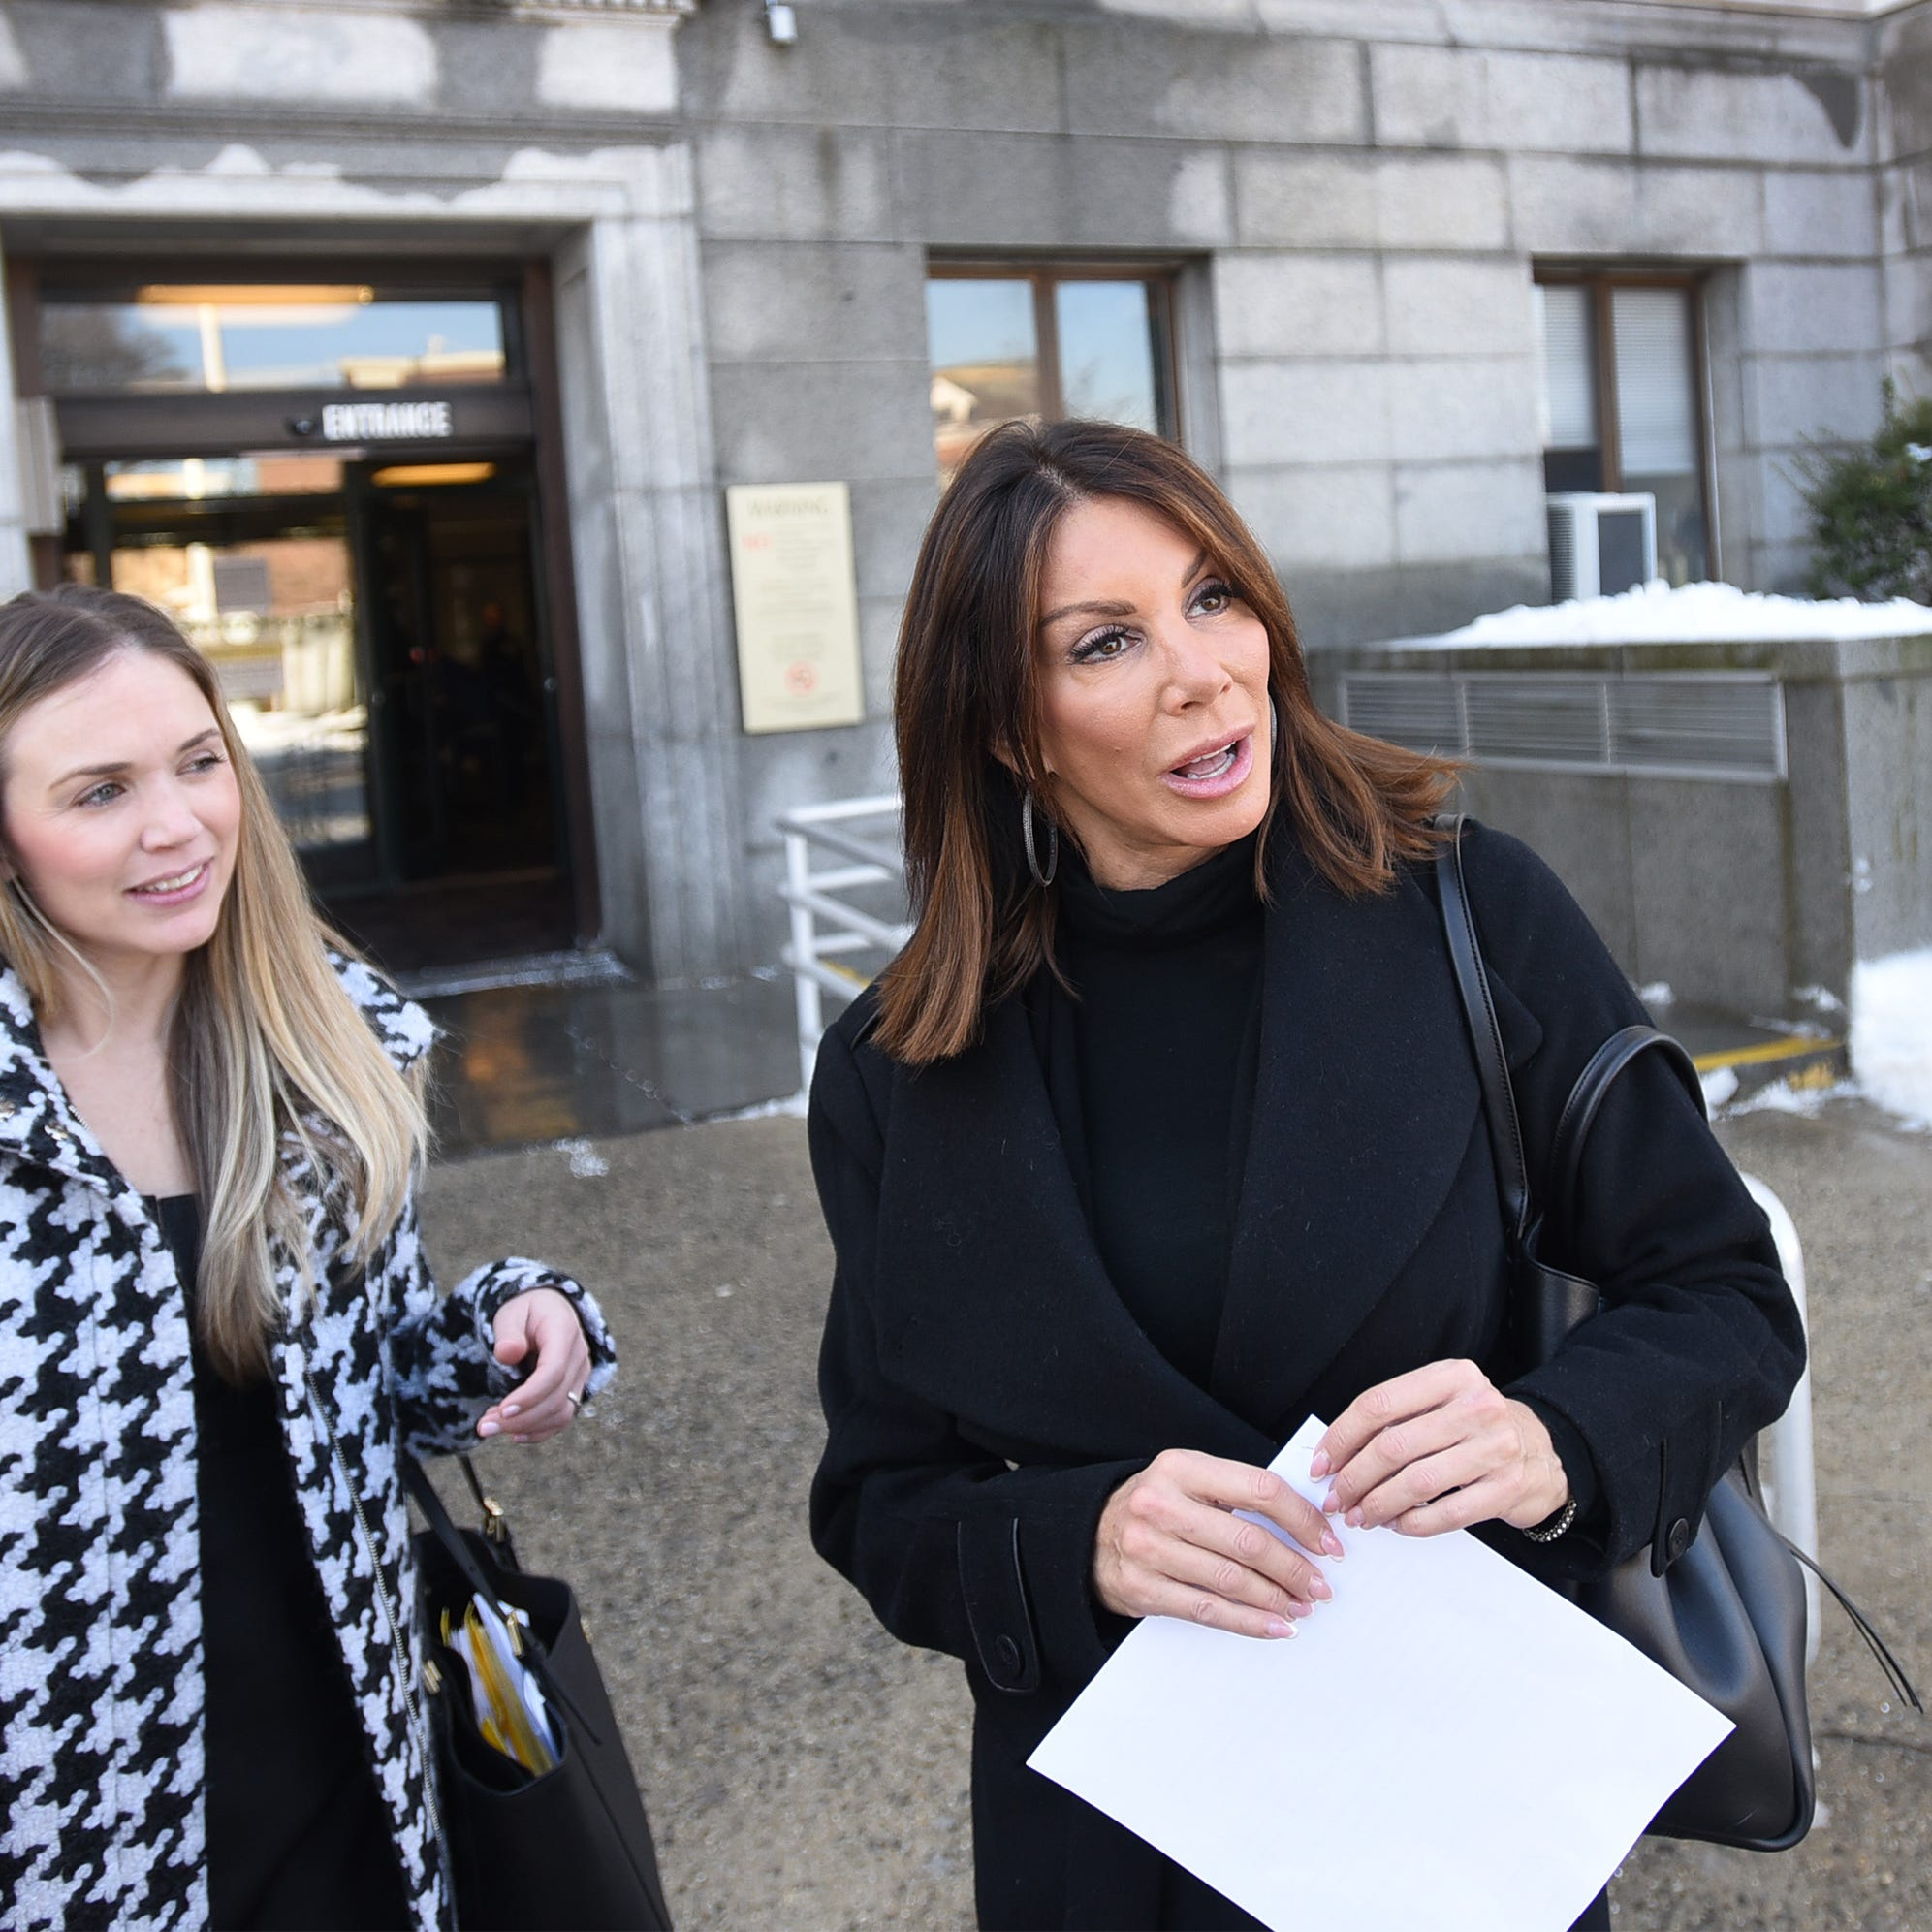 Real Housewives of New Jersey: Danielle Staub divorced after nine months